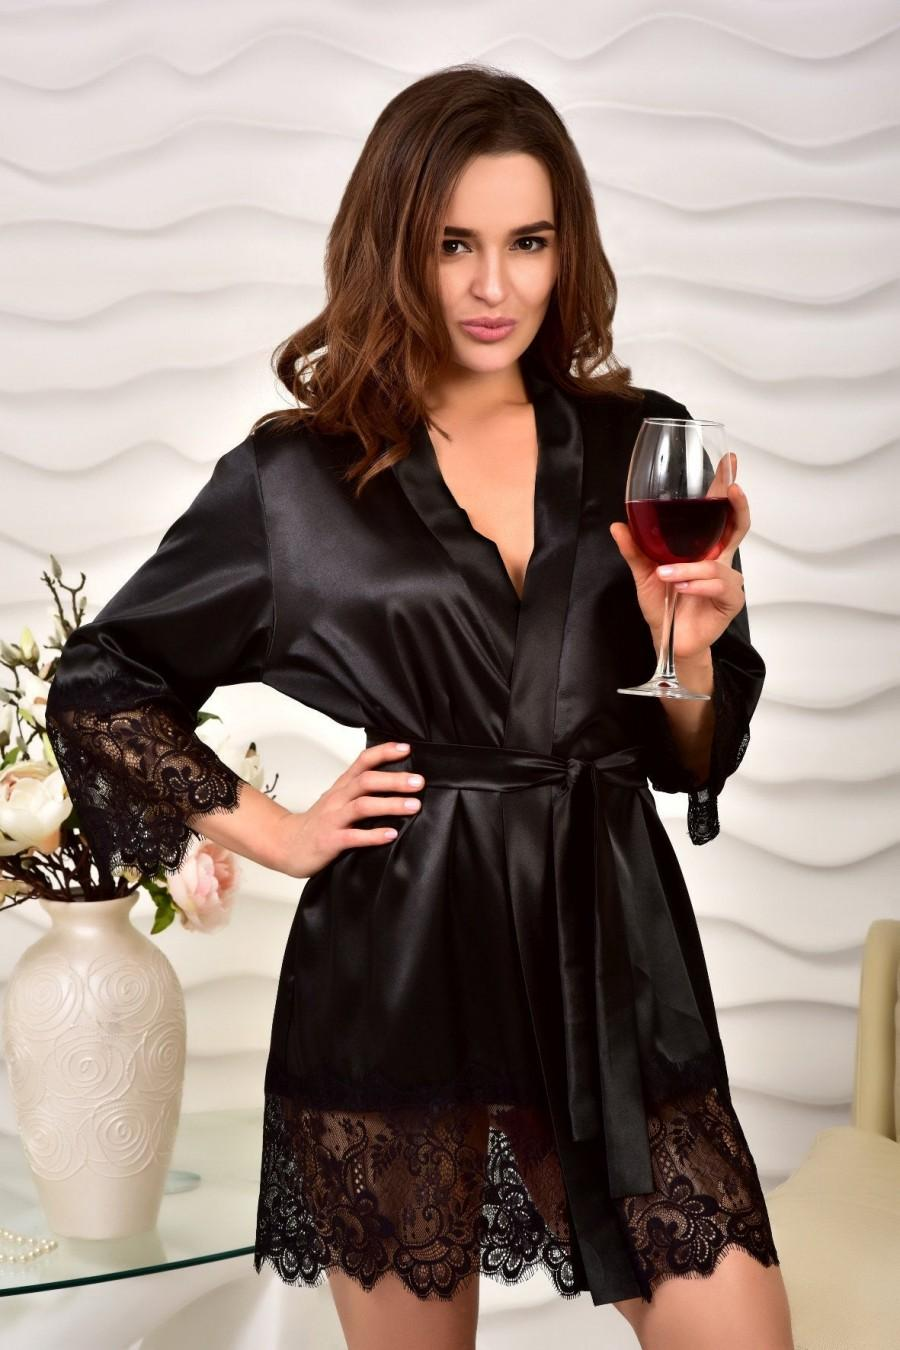 Mariage - Black satin kimono robe Lace dressing gown Robes for women Lace bridal short robe Wedding robe for bride Bridal party gift for daughter